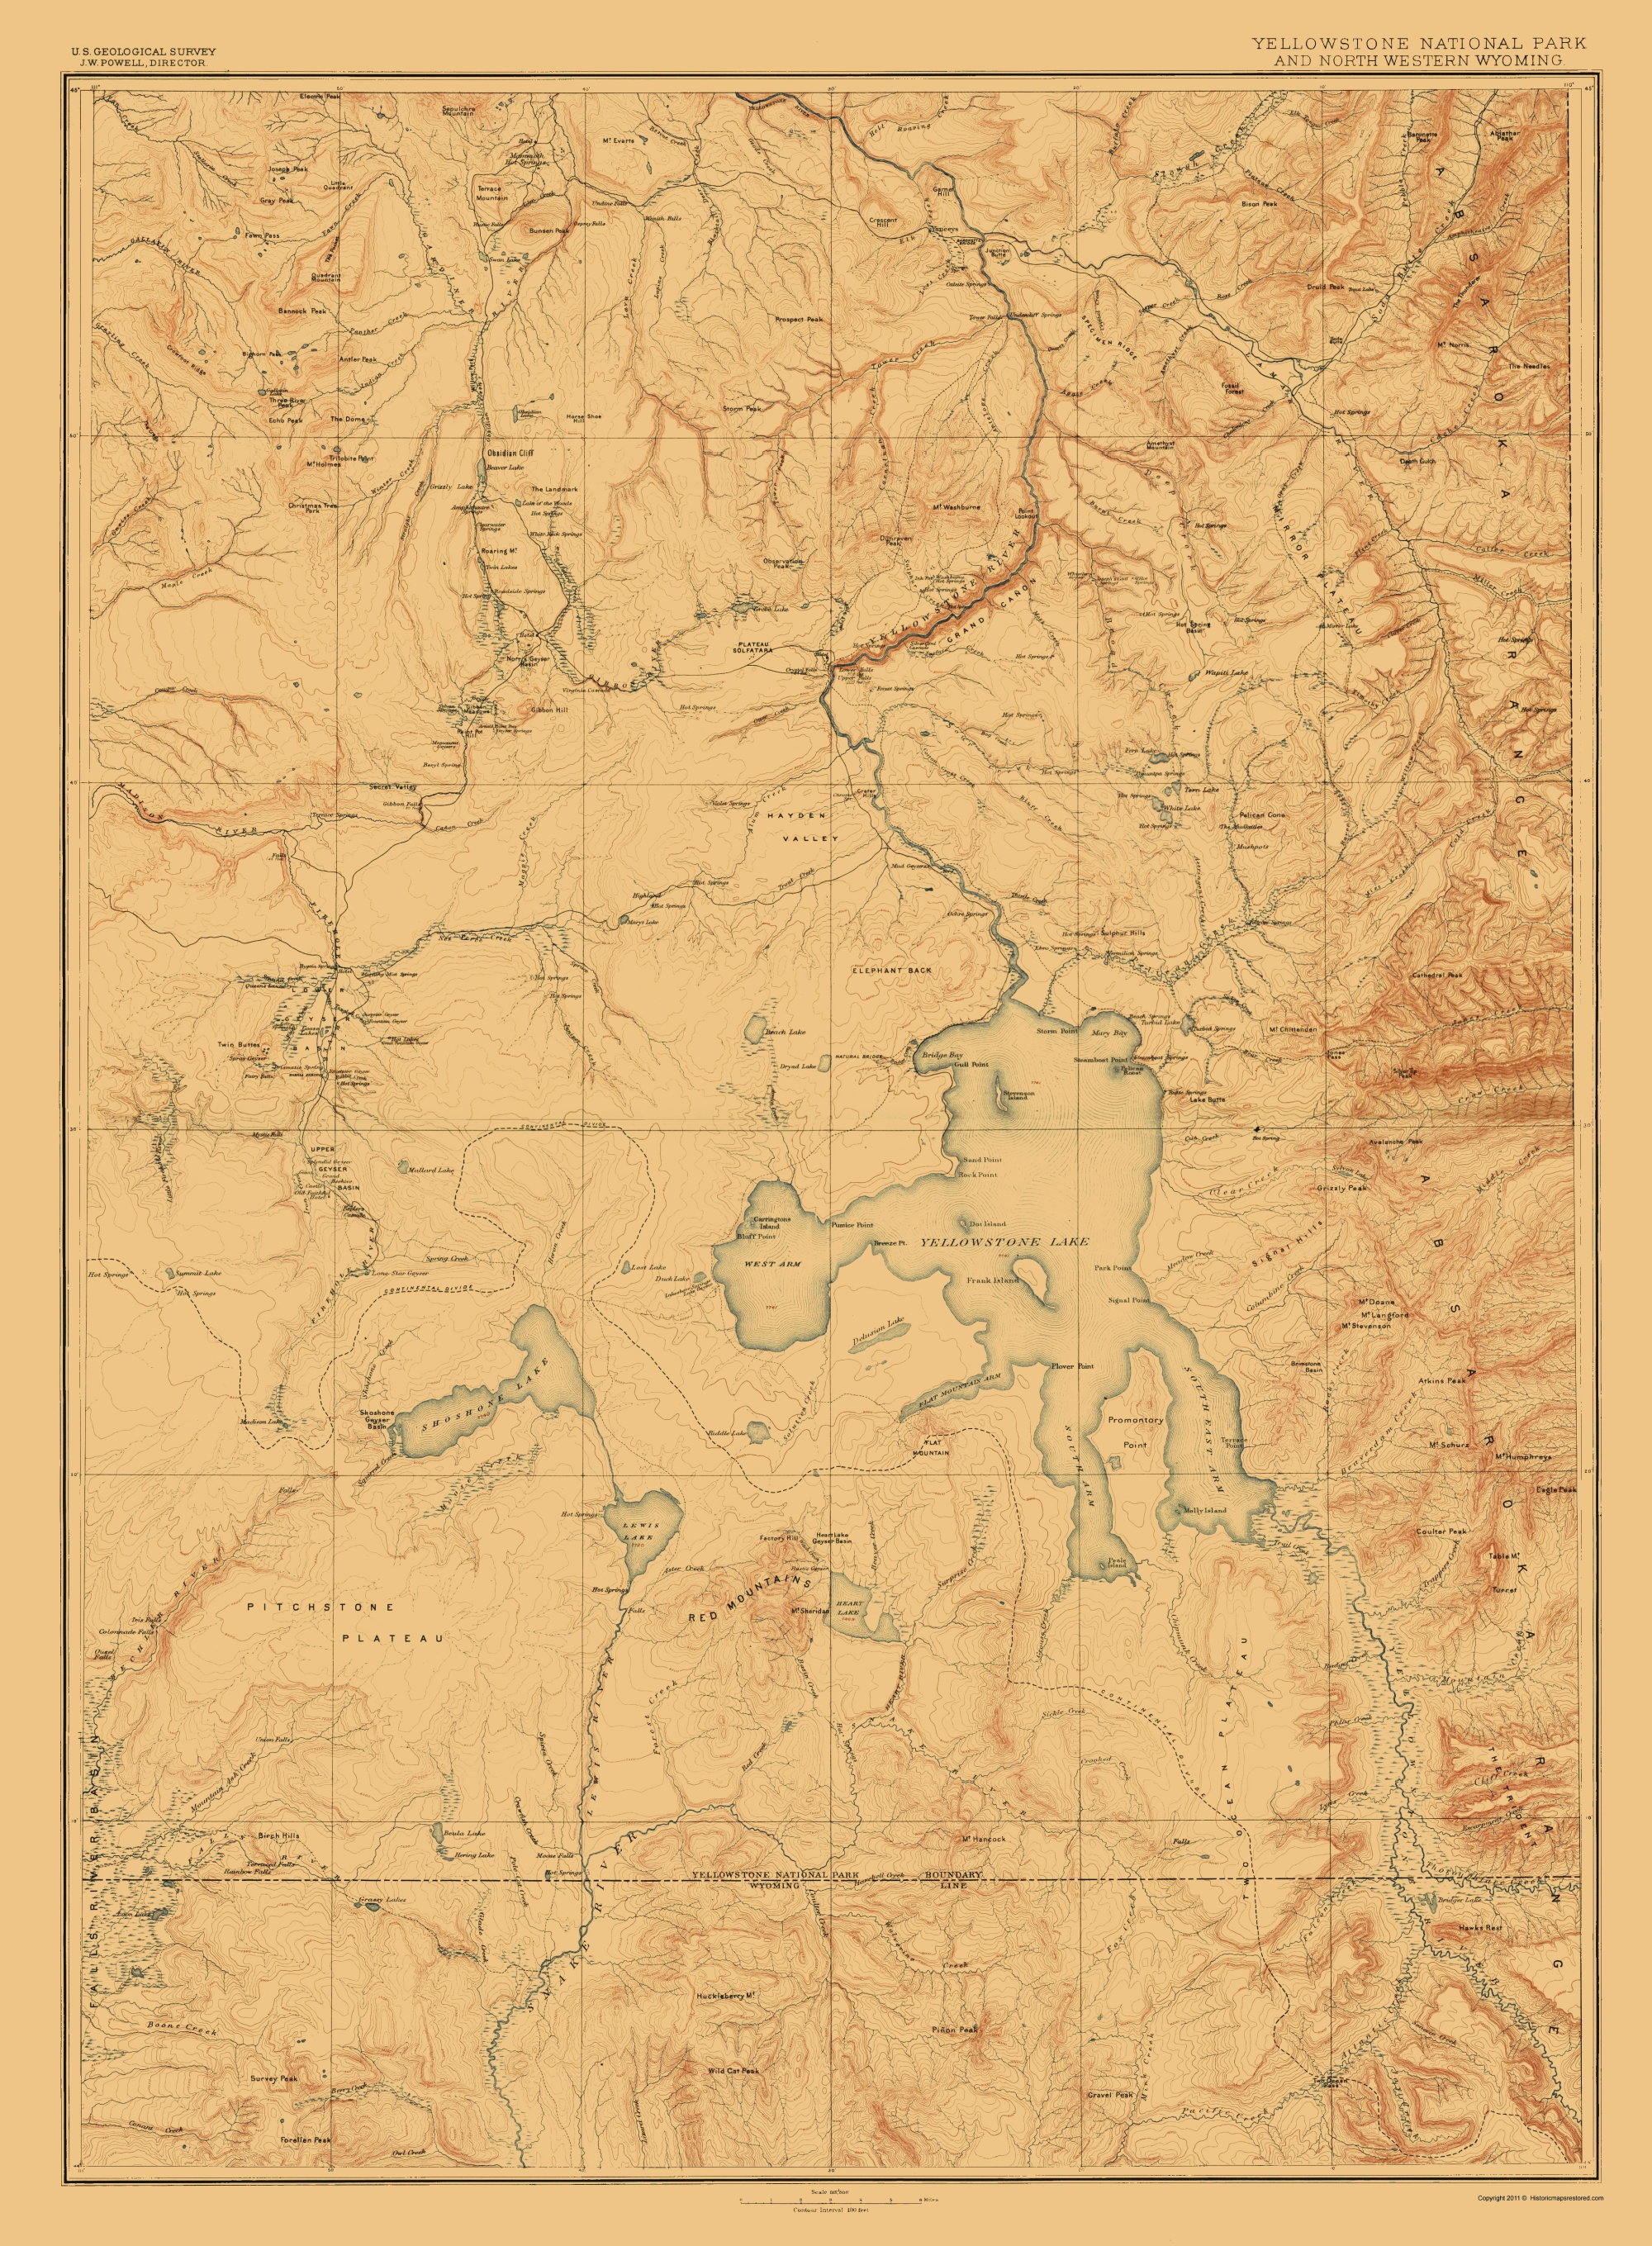 Old Topographical Map - Yellowstone National Park 1885